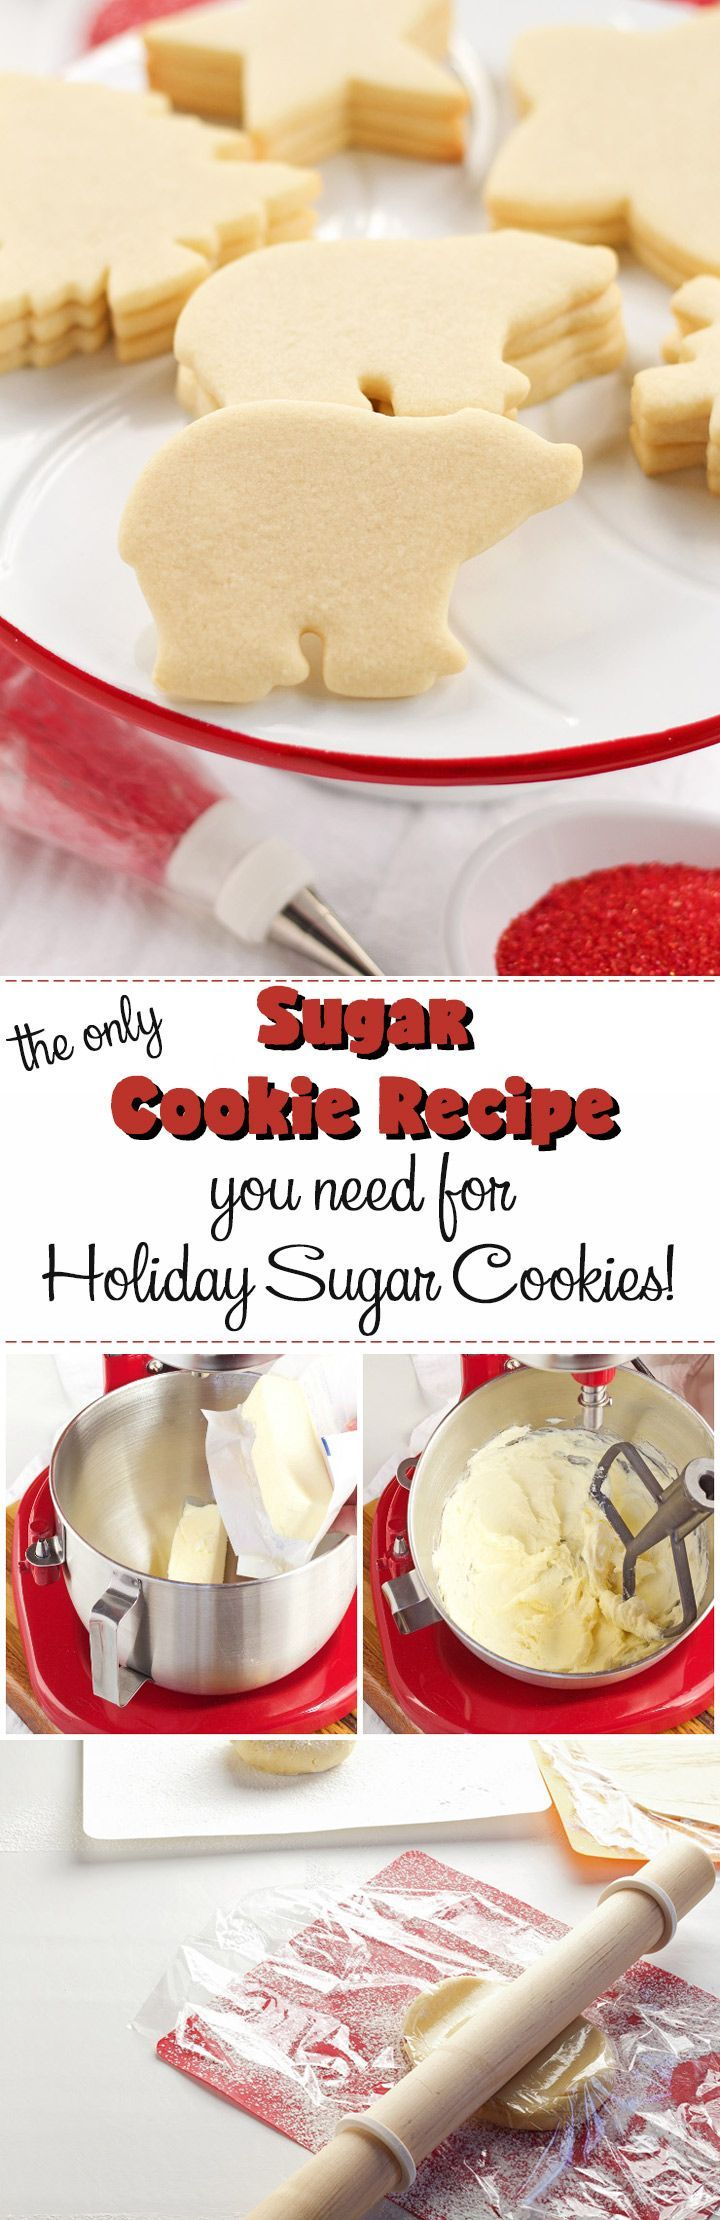 This is the ONLY Sugar Cookie Recipe You'll NEED for your Holiday Sugar Cookies | The Bearfoot Baker